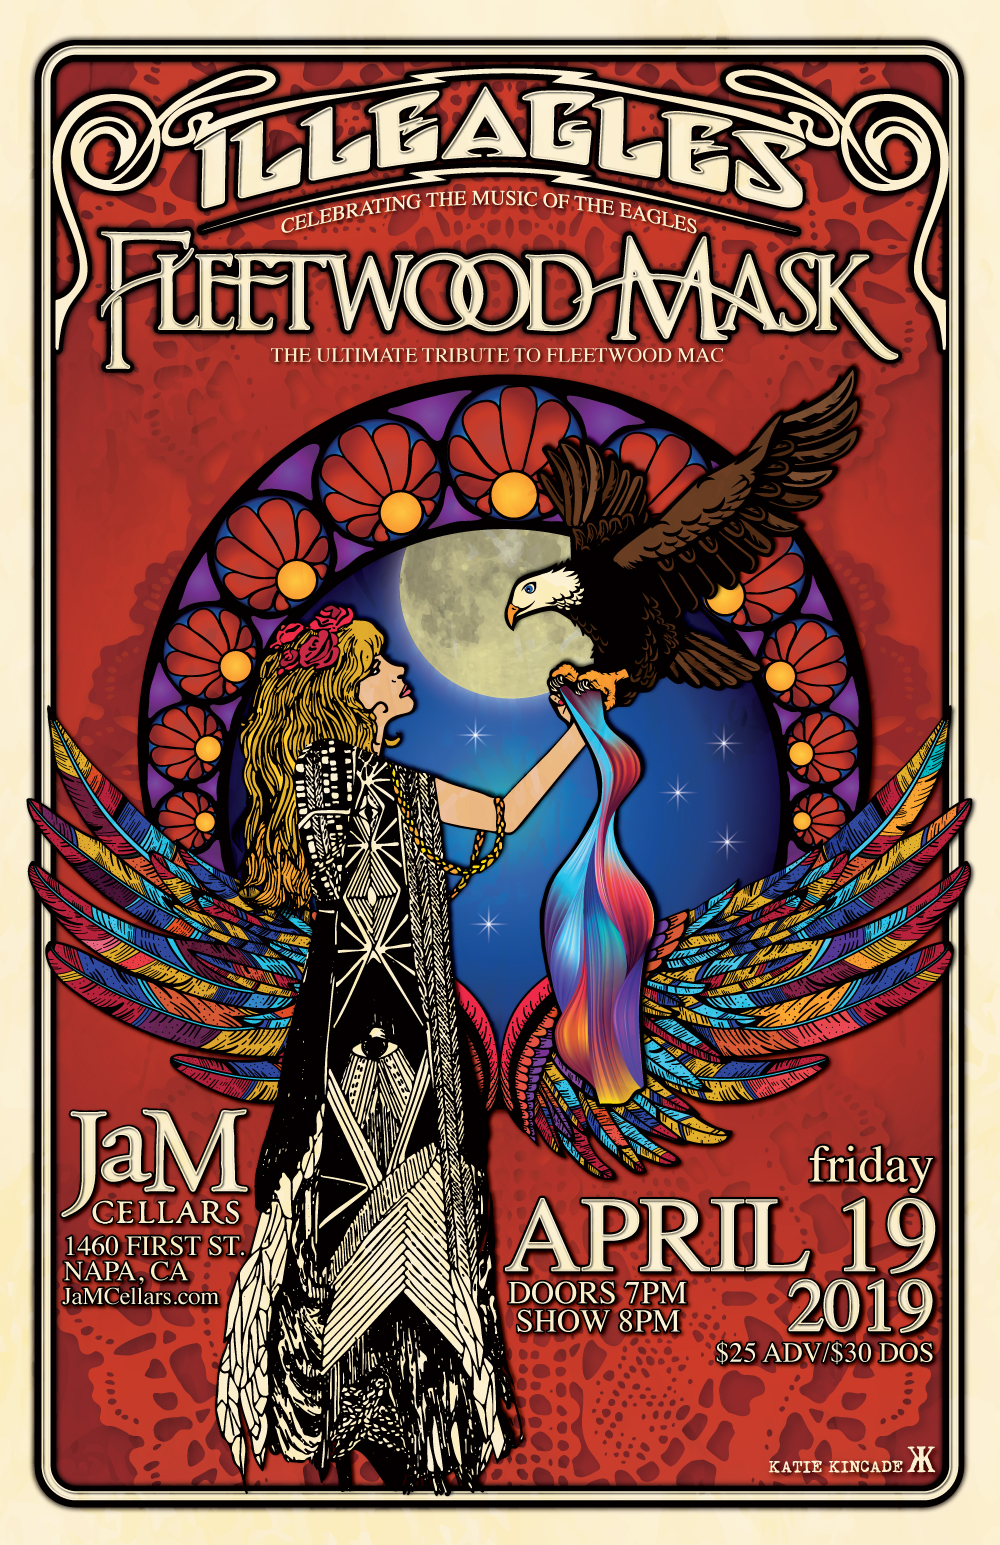 Fleetwood Mask, Fleetwood Mac tribute band is performing with the Illegals